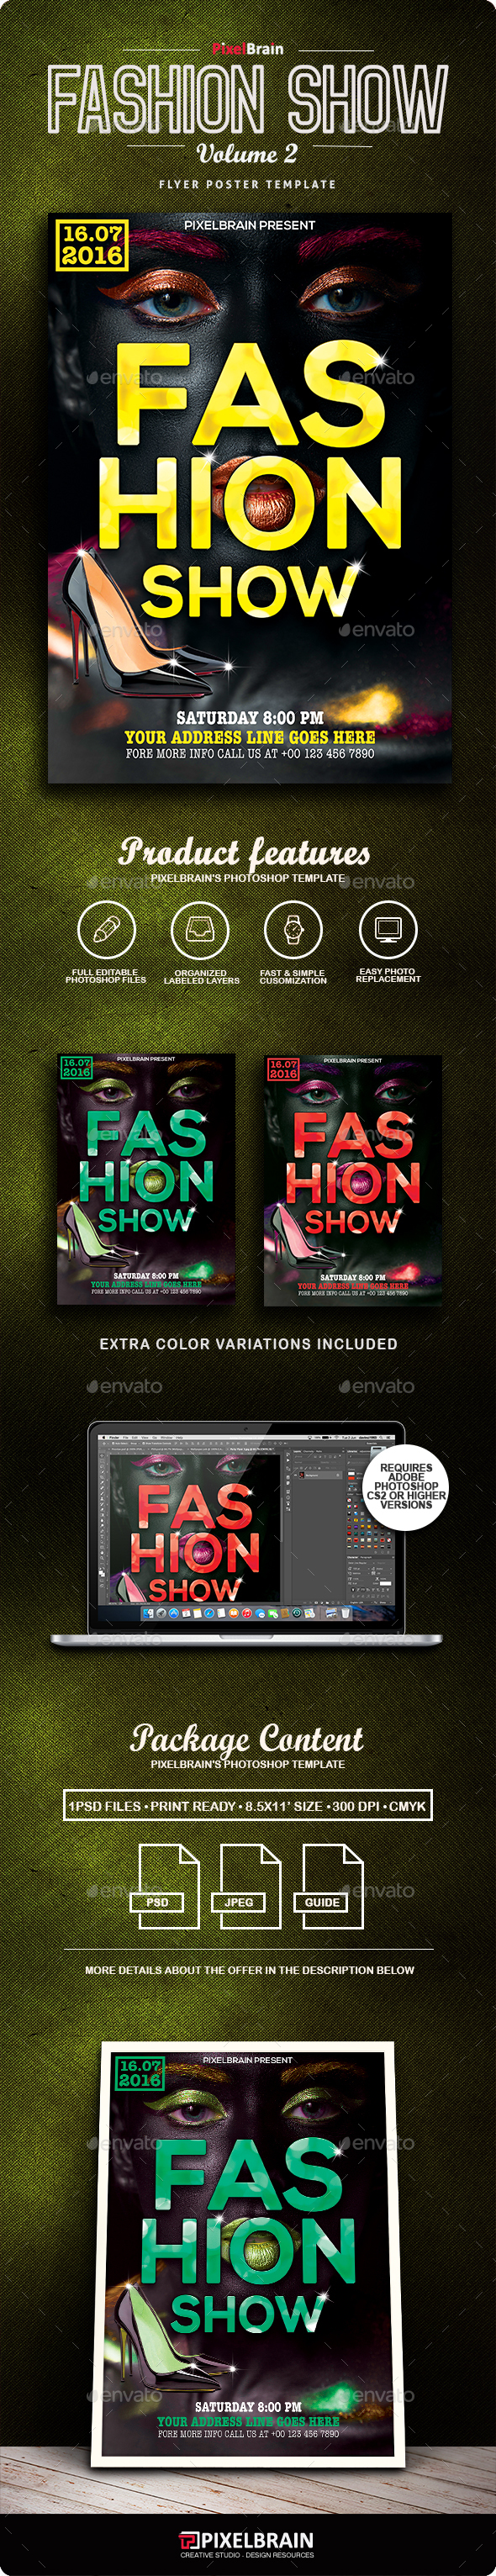 Fashion Show Flyer/Poster Vol. 2 - Flyers Print Templates